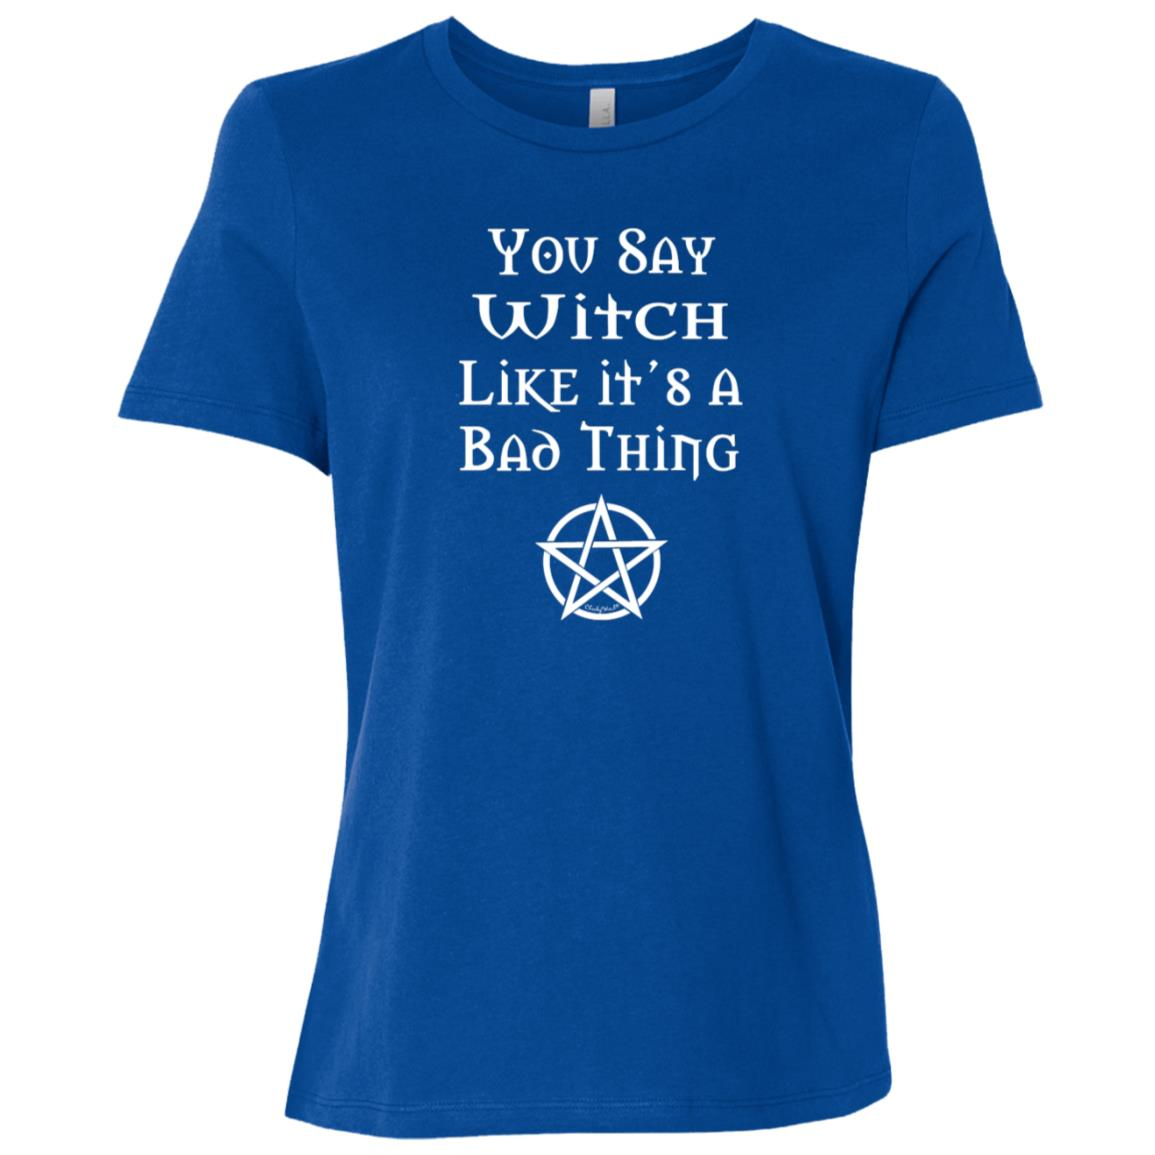 You Say Witch Like it's a Bad Thing Funny Cheeky Witch Women Short Sleeve T-Shirt